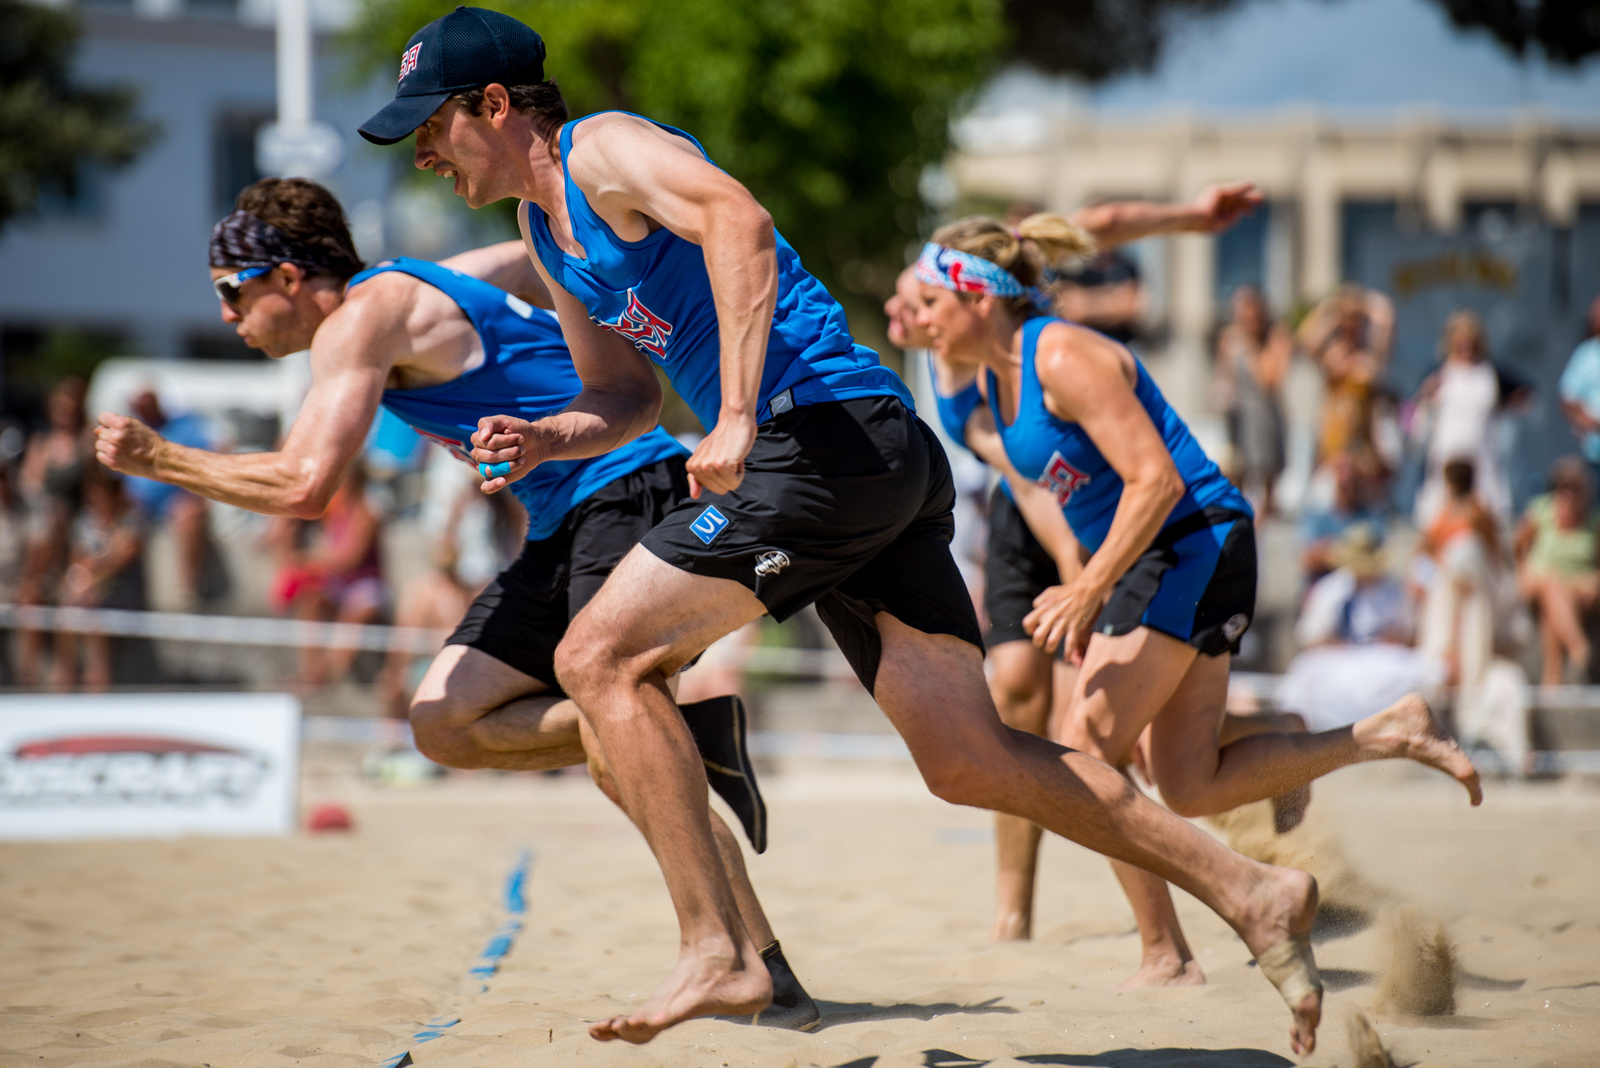 Video Thumbnail: 2017 World Championships of Beach Ultimate, Mixed Masters Gold Medal Game: USA vs. Canada